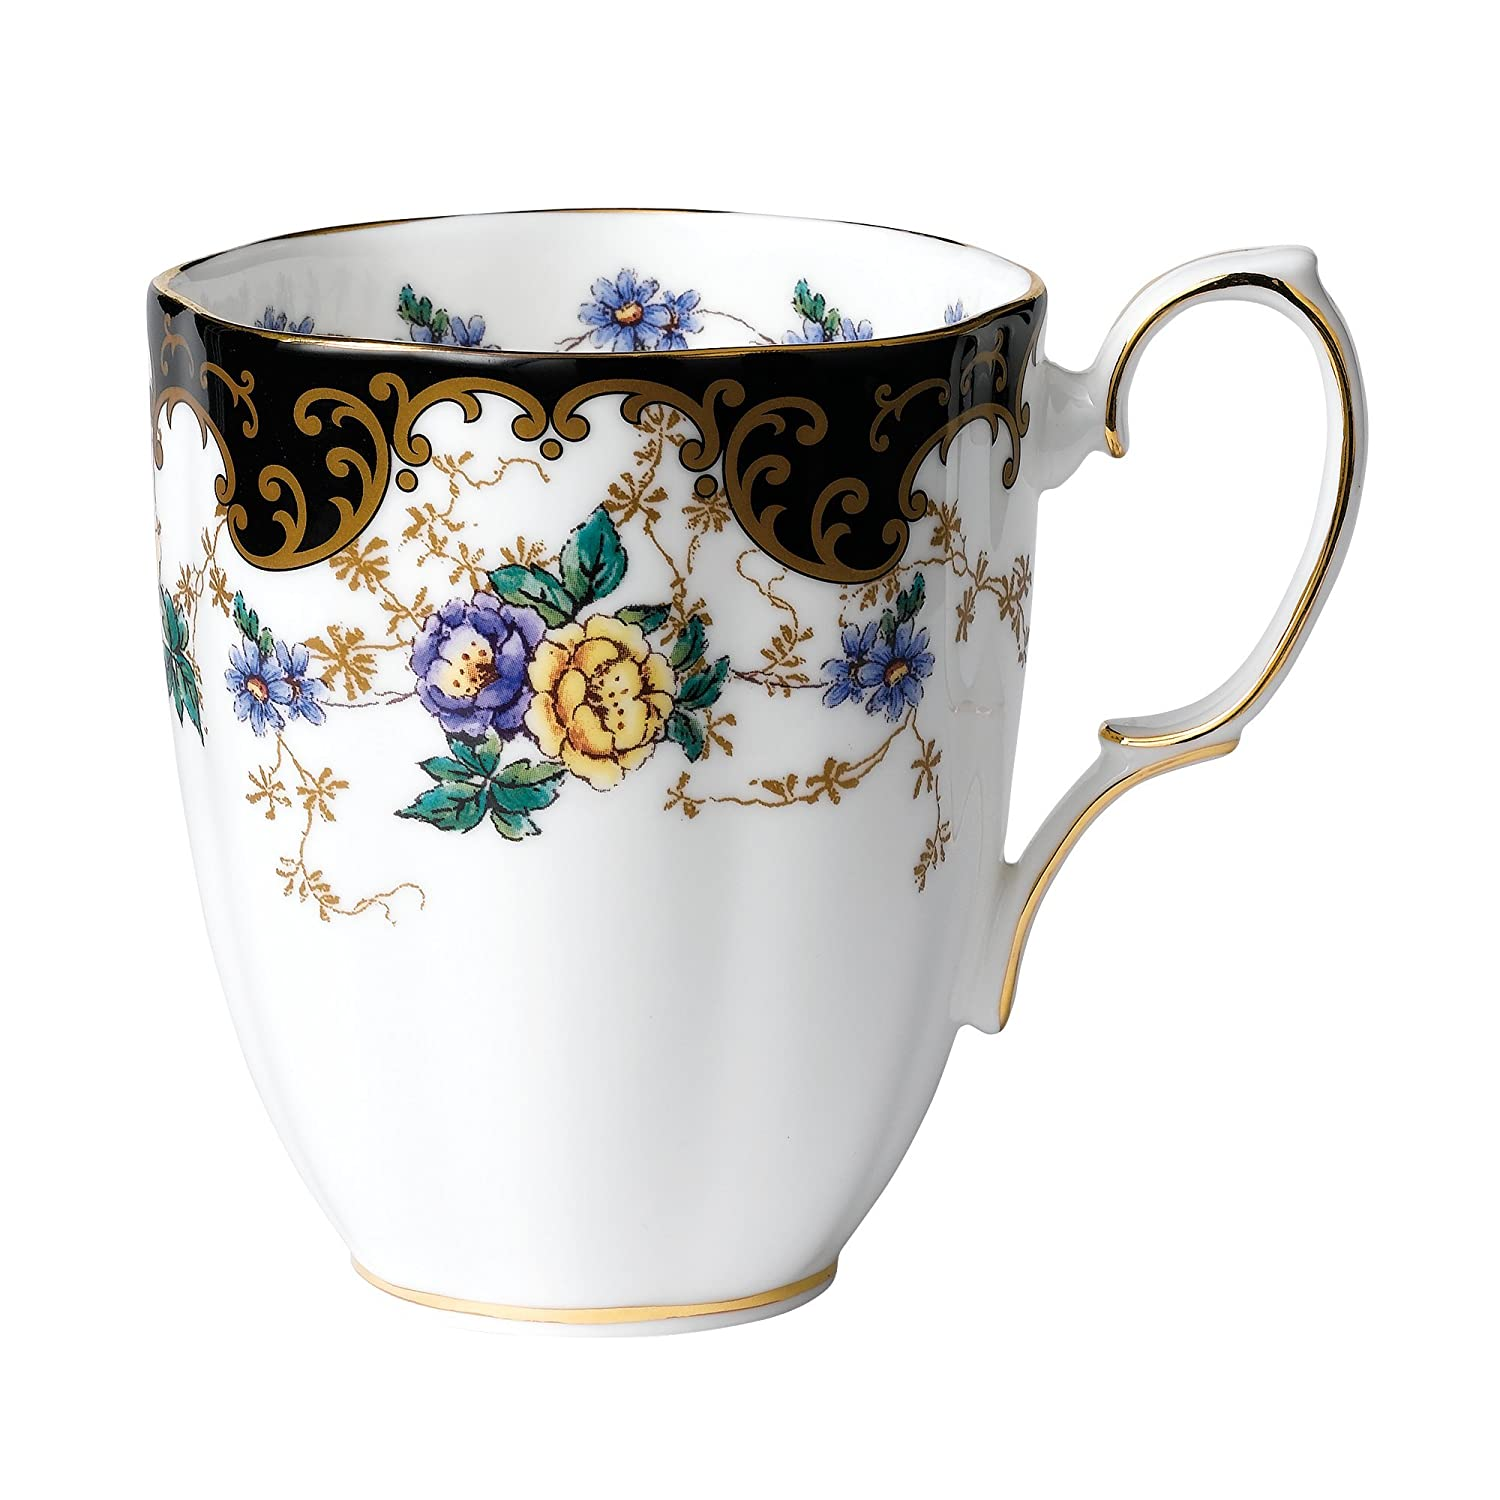 bfb4b75f081 Buy Royal Doulton-Royal Albert 100 Years 1910-Duchess Mug Online at Low  Prices in India - Amazon.in